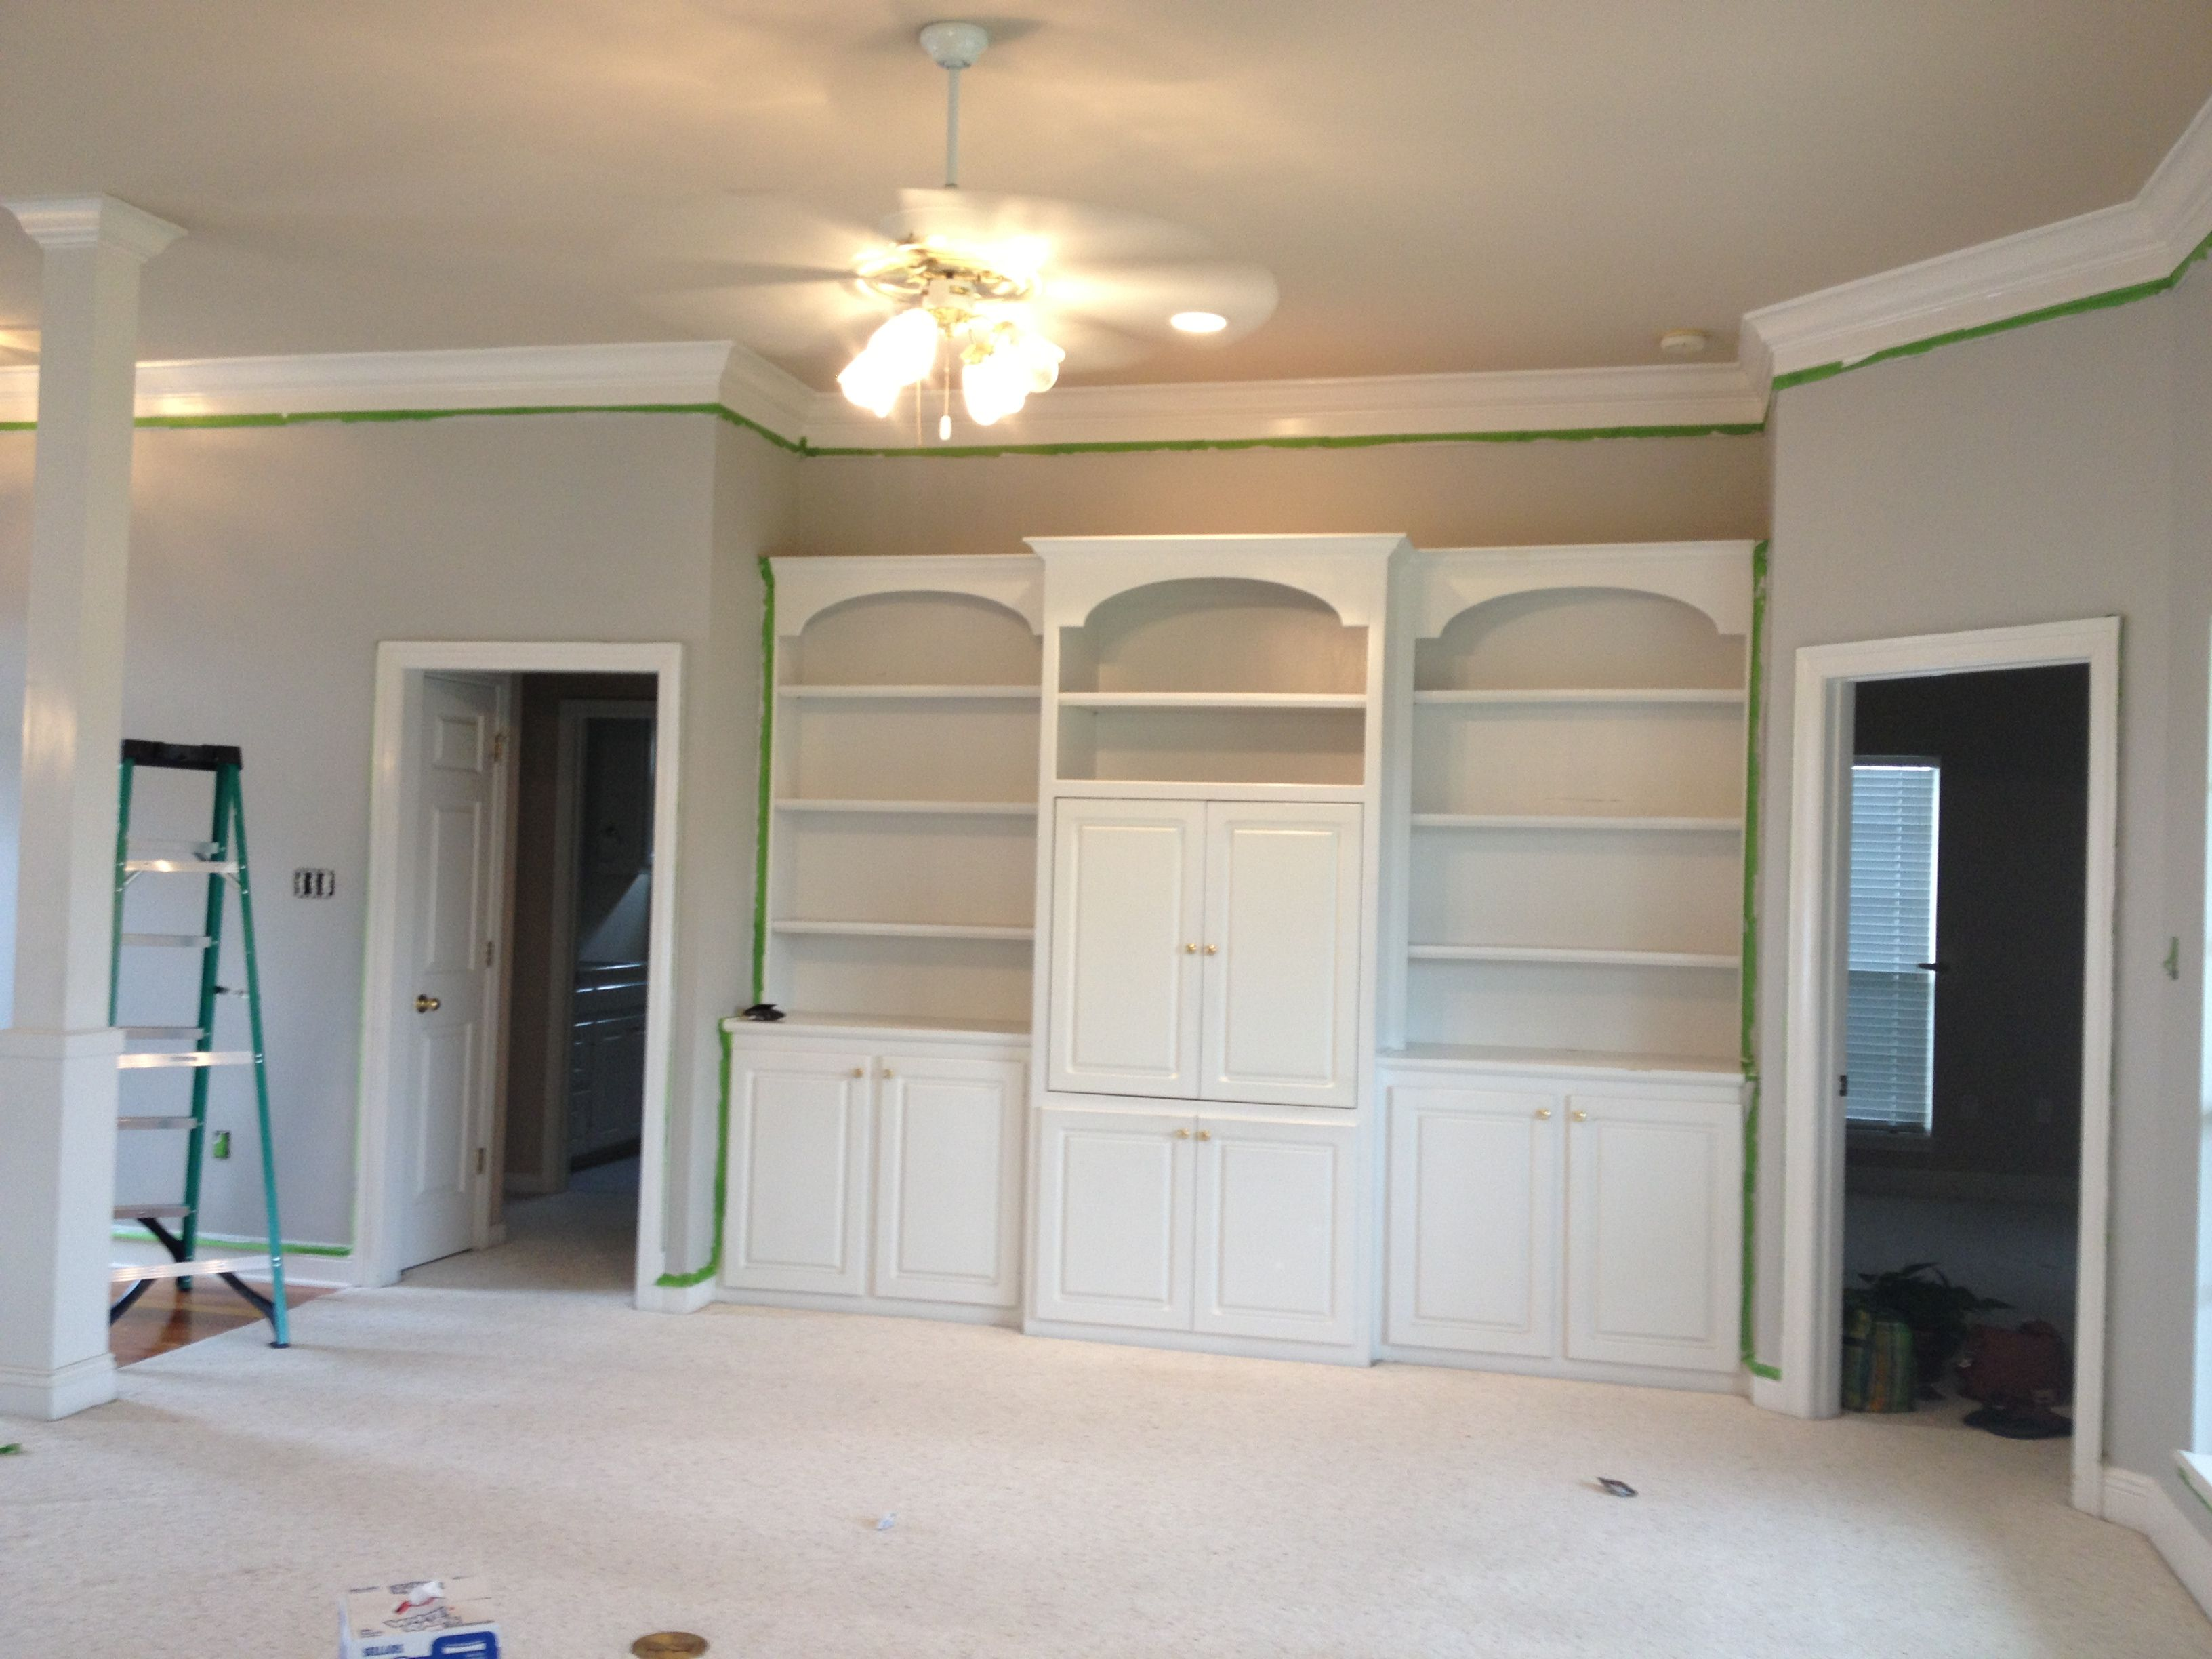 And the winner is...Sherwin Williams, Light French Gray